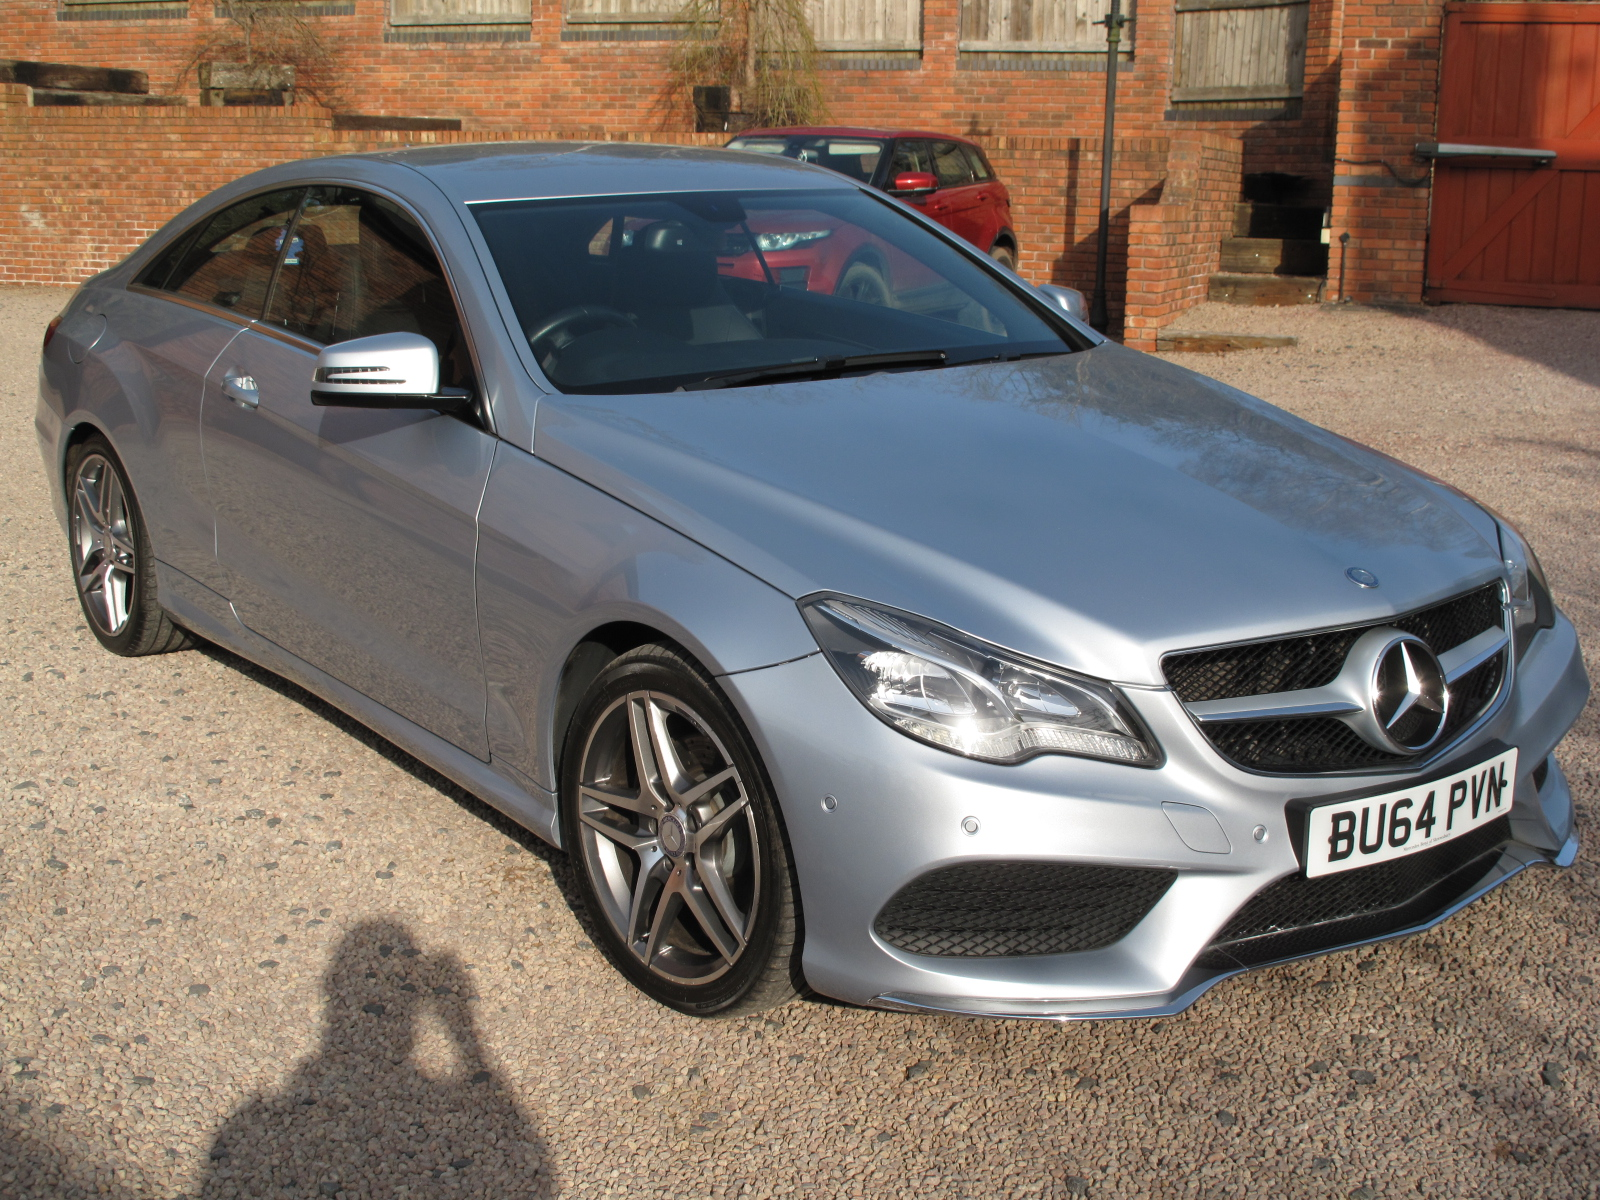 2014 64 Mercedes-Benz E Class 2.1 E250 CDI AMG Sport 7G-Tronic Plus 2dr ABSOLUTELY PRISTINE CONDITION THROUGHOUT!